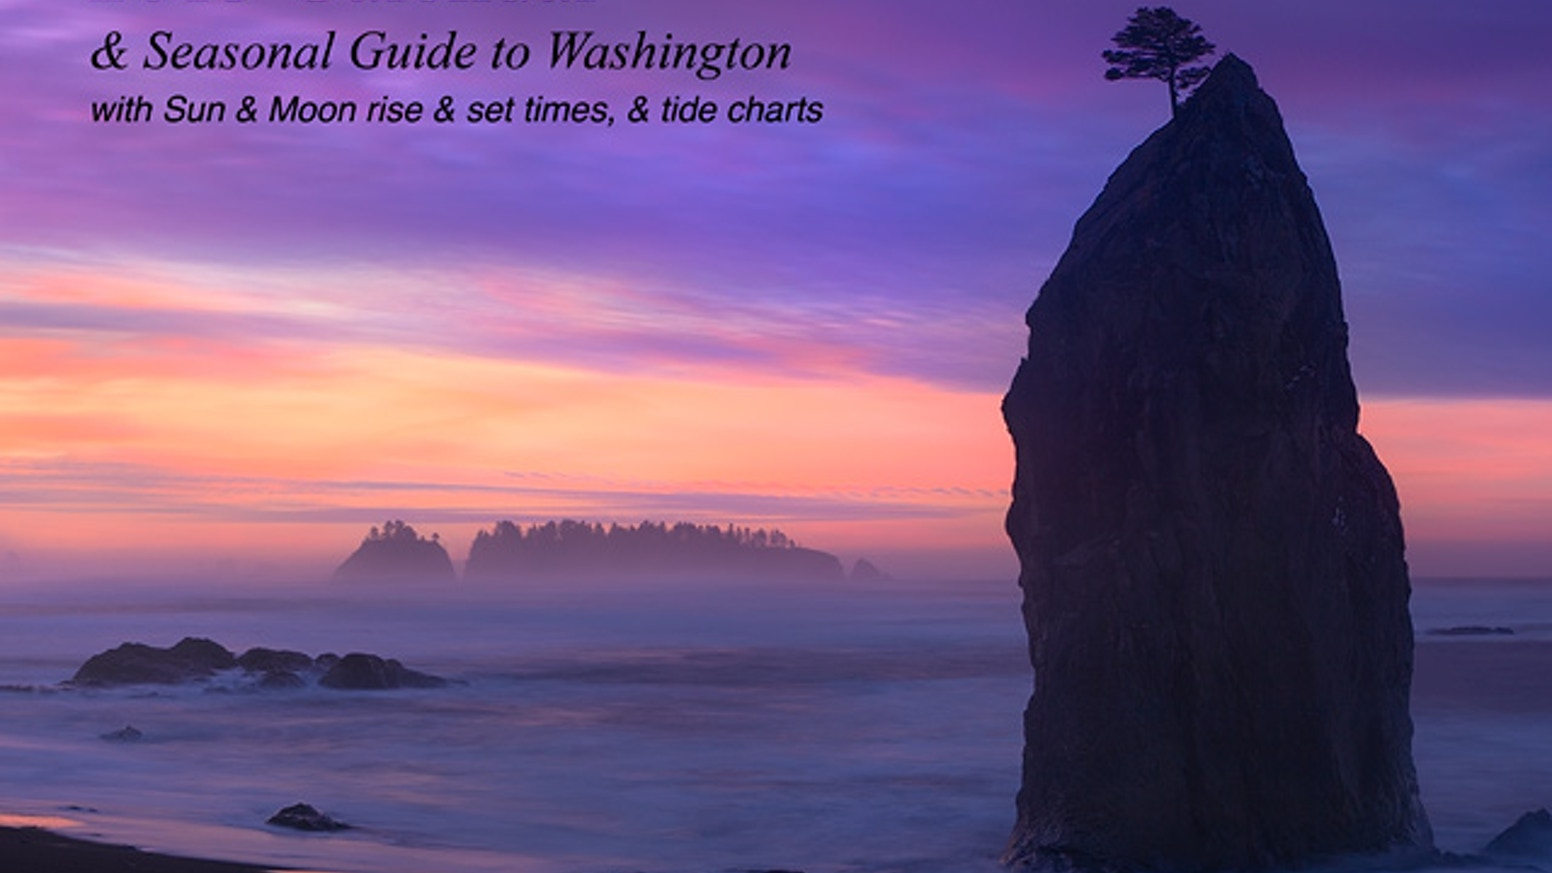 2013 Calendar & Seasonal Guide to Washington and California by